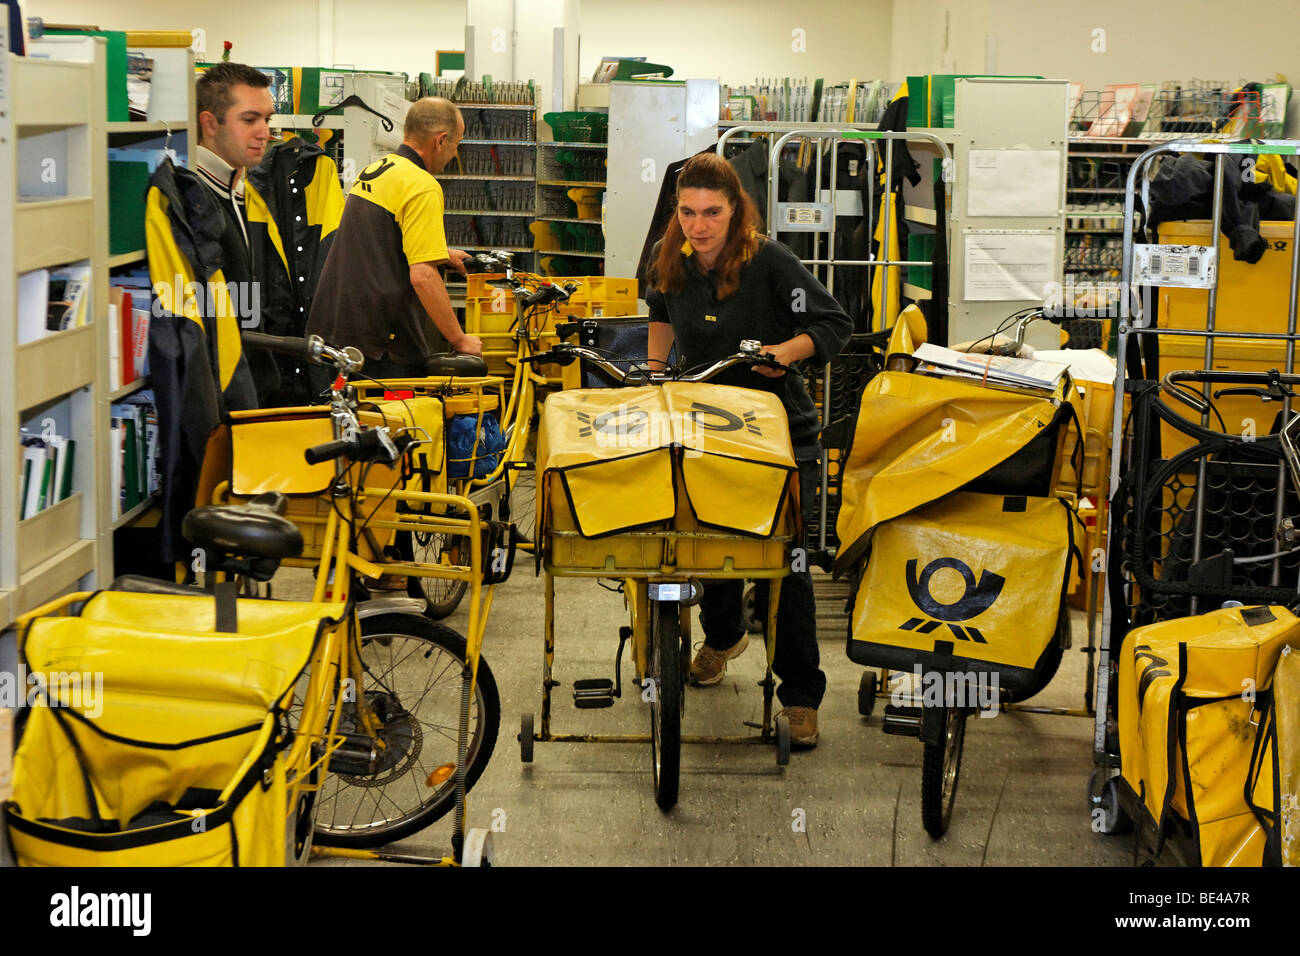 Mail carrier Annerose Schulze pushes her bicycle in the postal service distribution center of the Deutsche Post Stock Photo